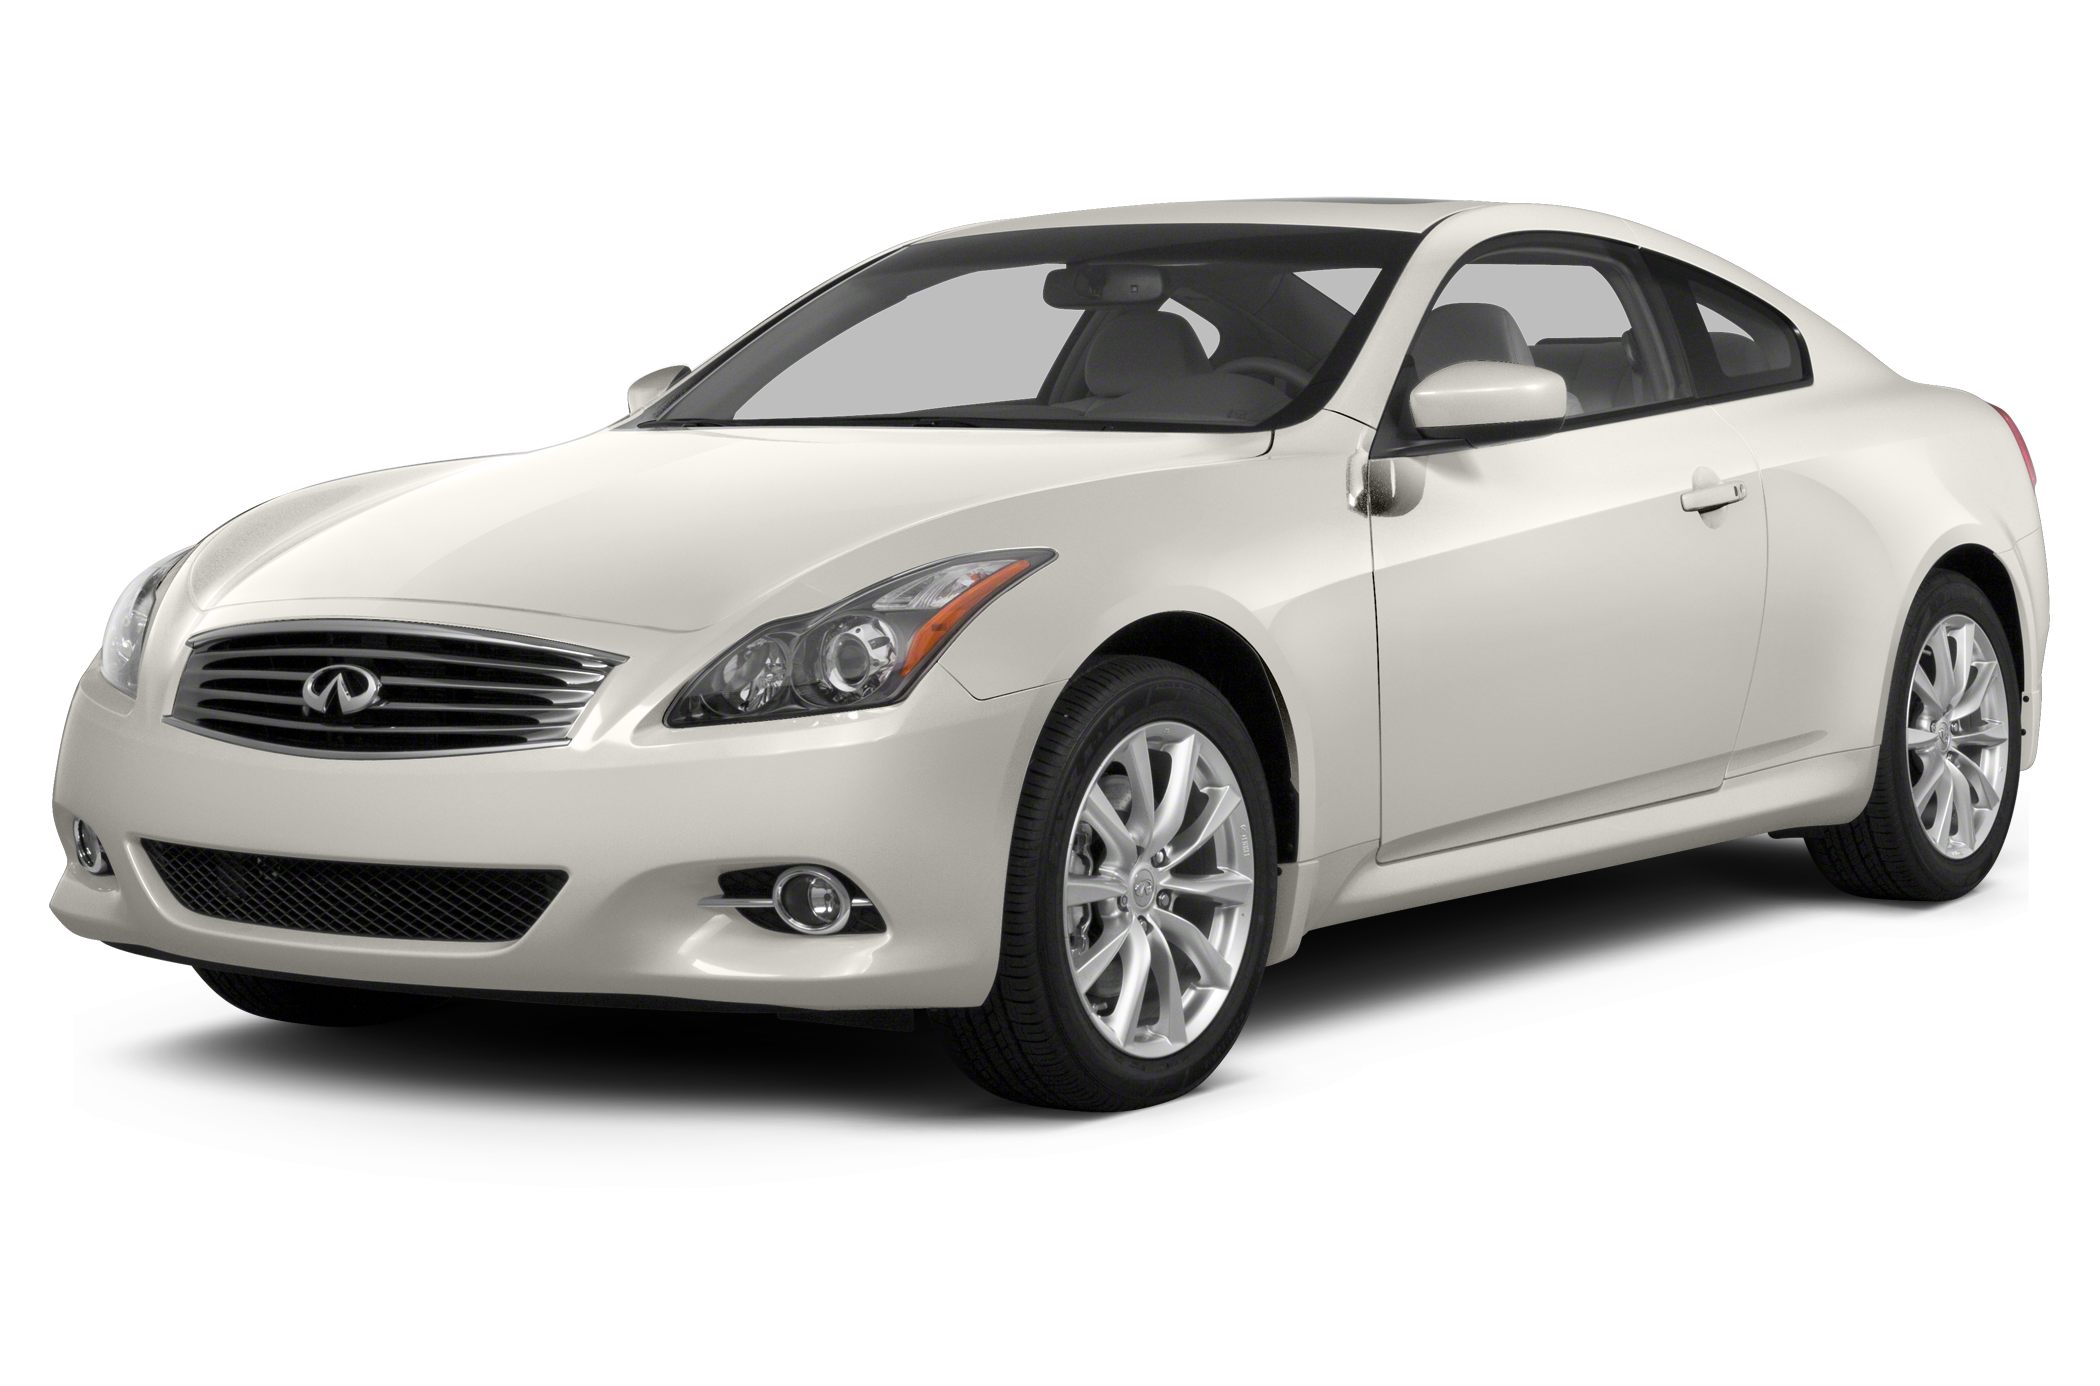 2013 Infiniti G37 X Sedan for sale in Birmingham for $25,800 with 32,019 miles